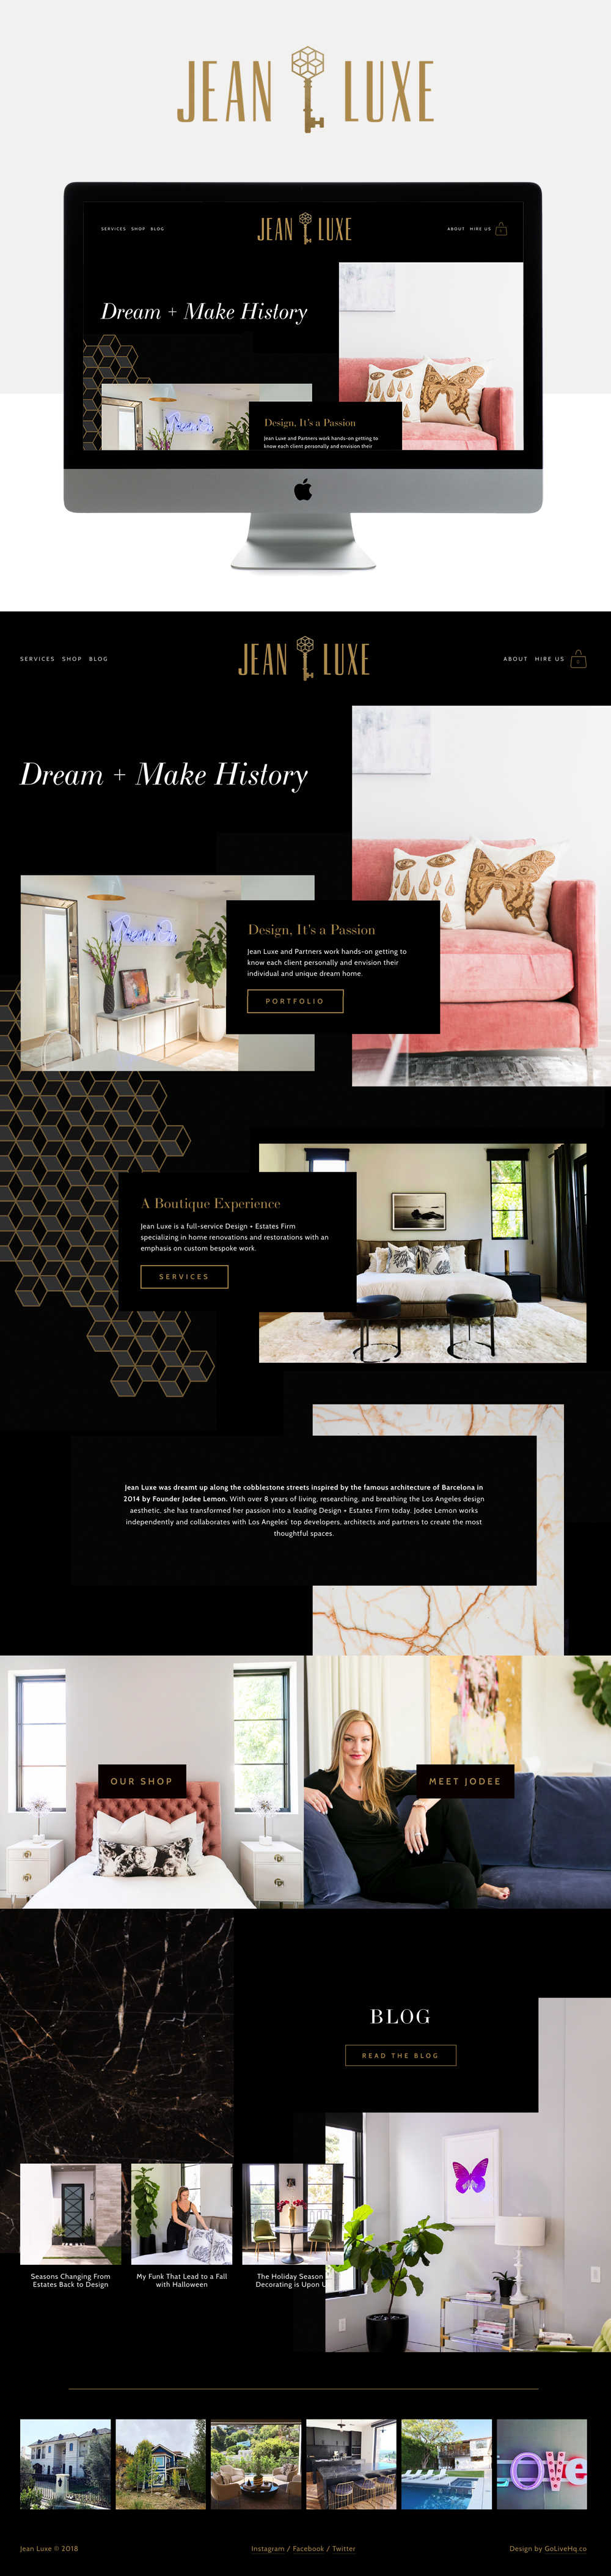 High-end, Luxurious Website For Interior Design Firm | Go Live HQ